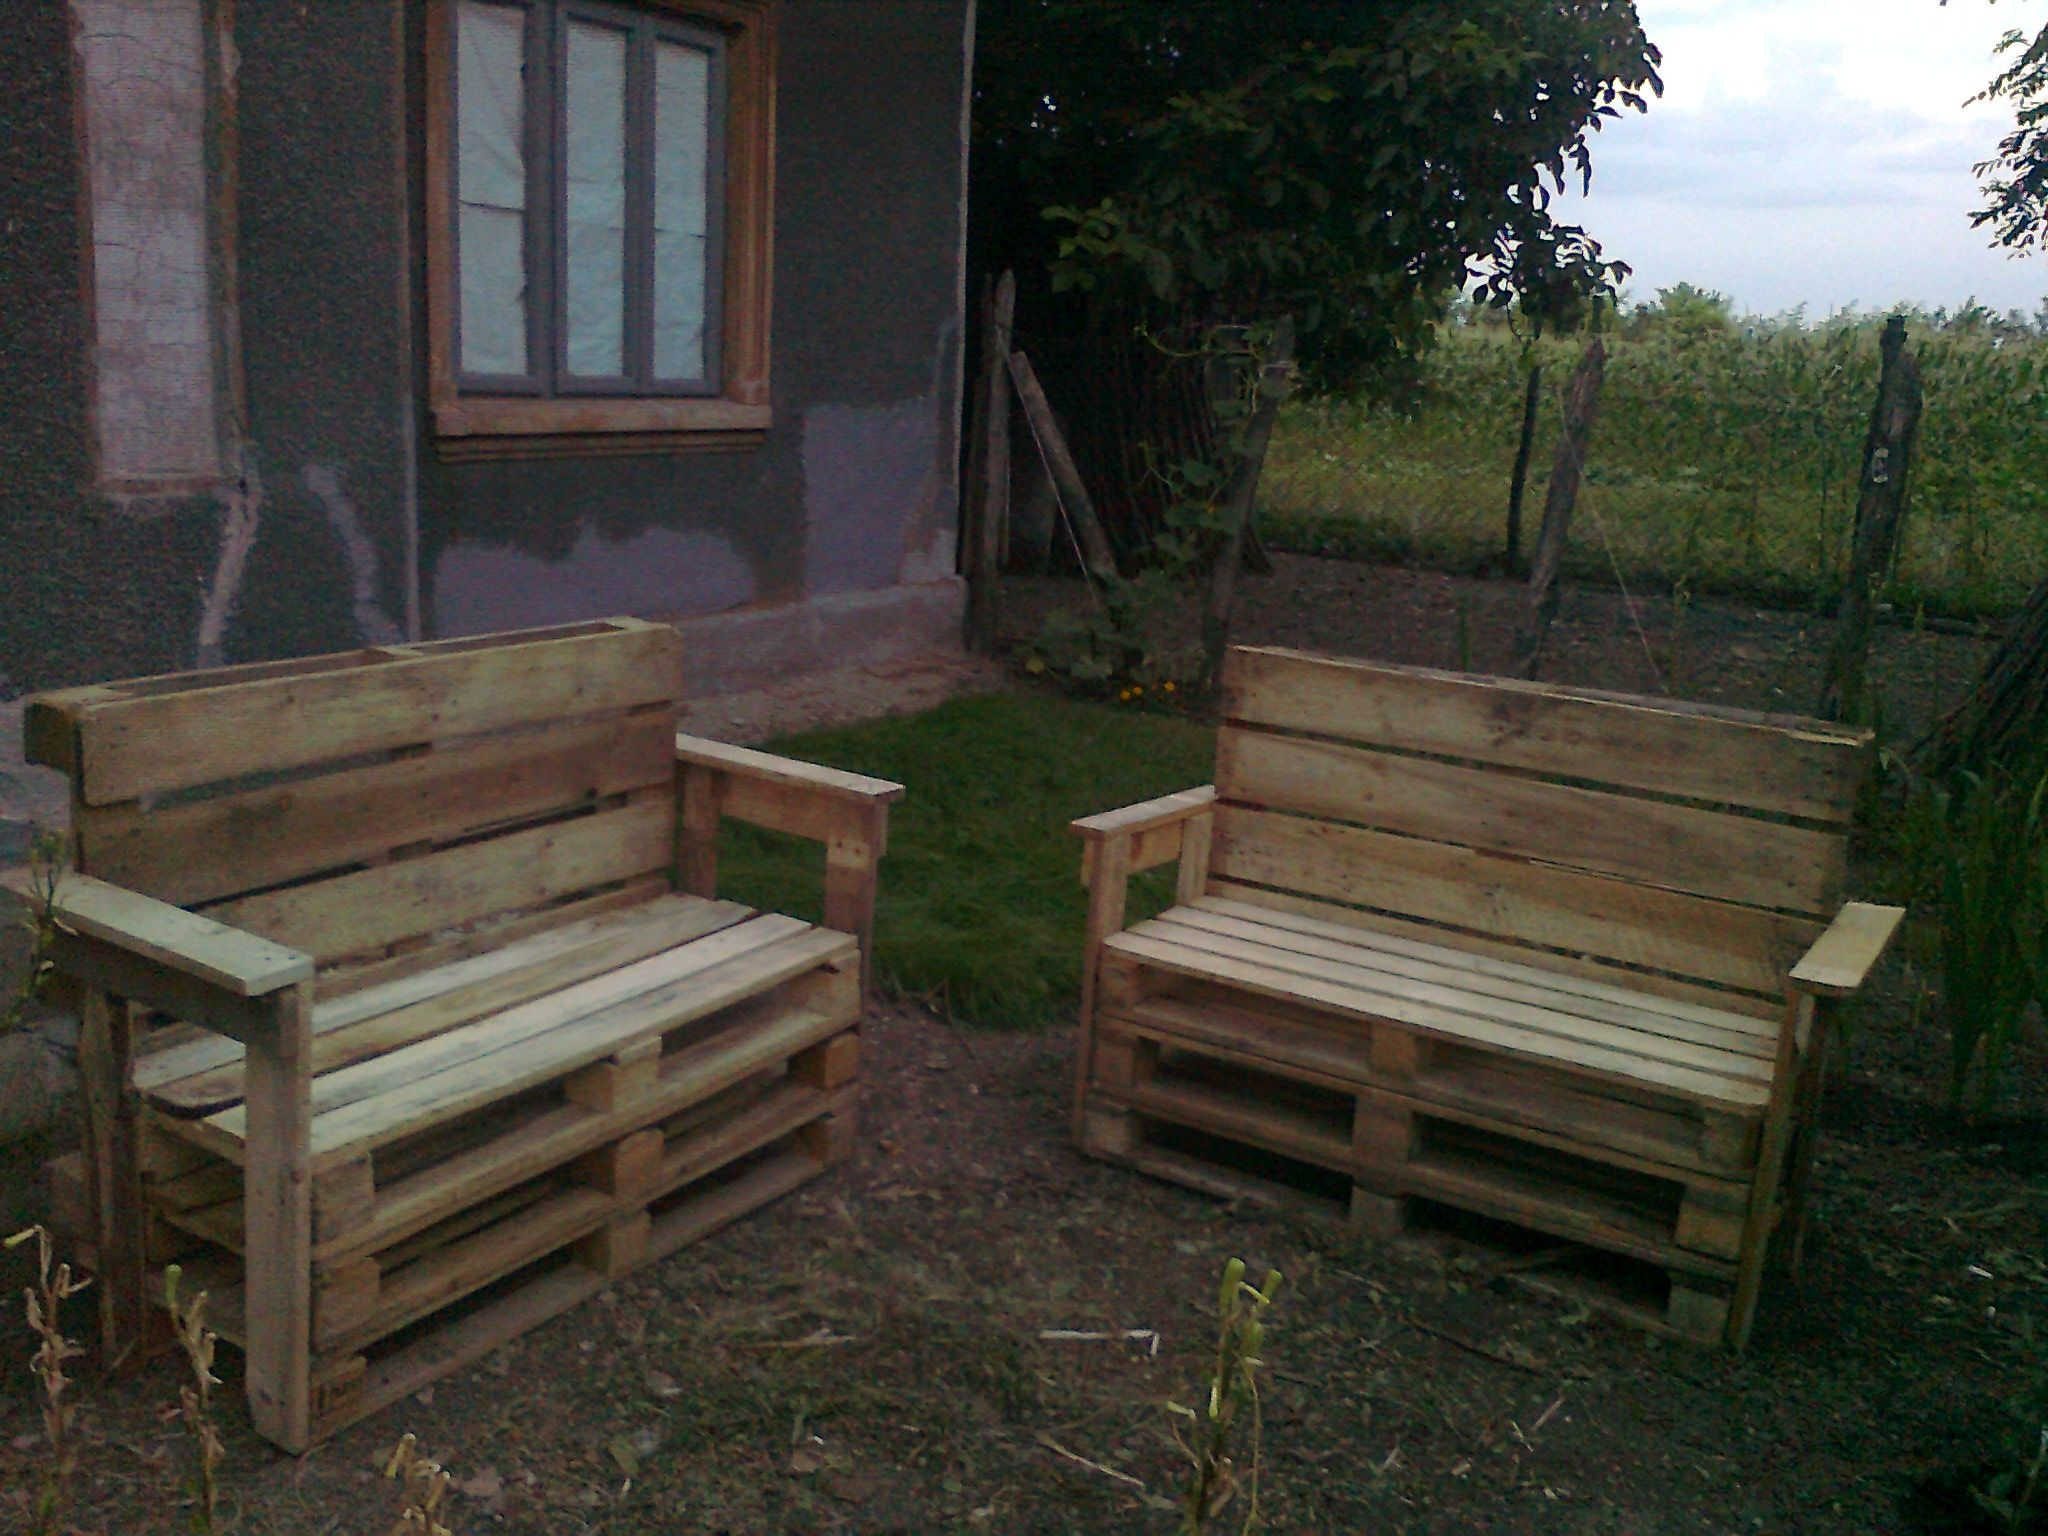 Garden Benches From Reclaimed Wooden Pallets Recycled